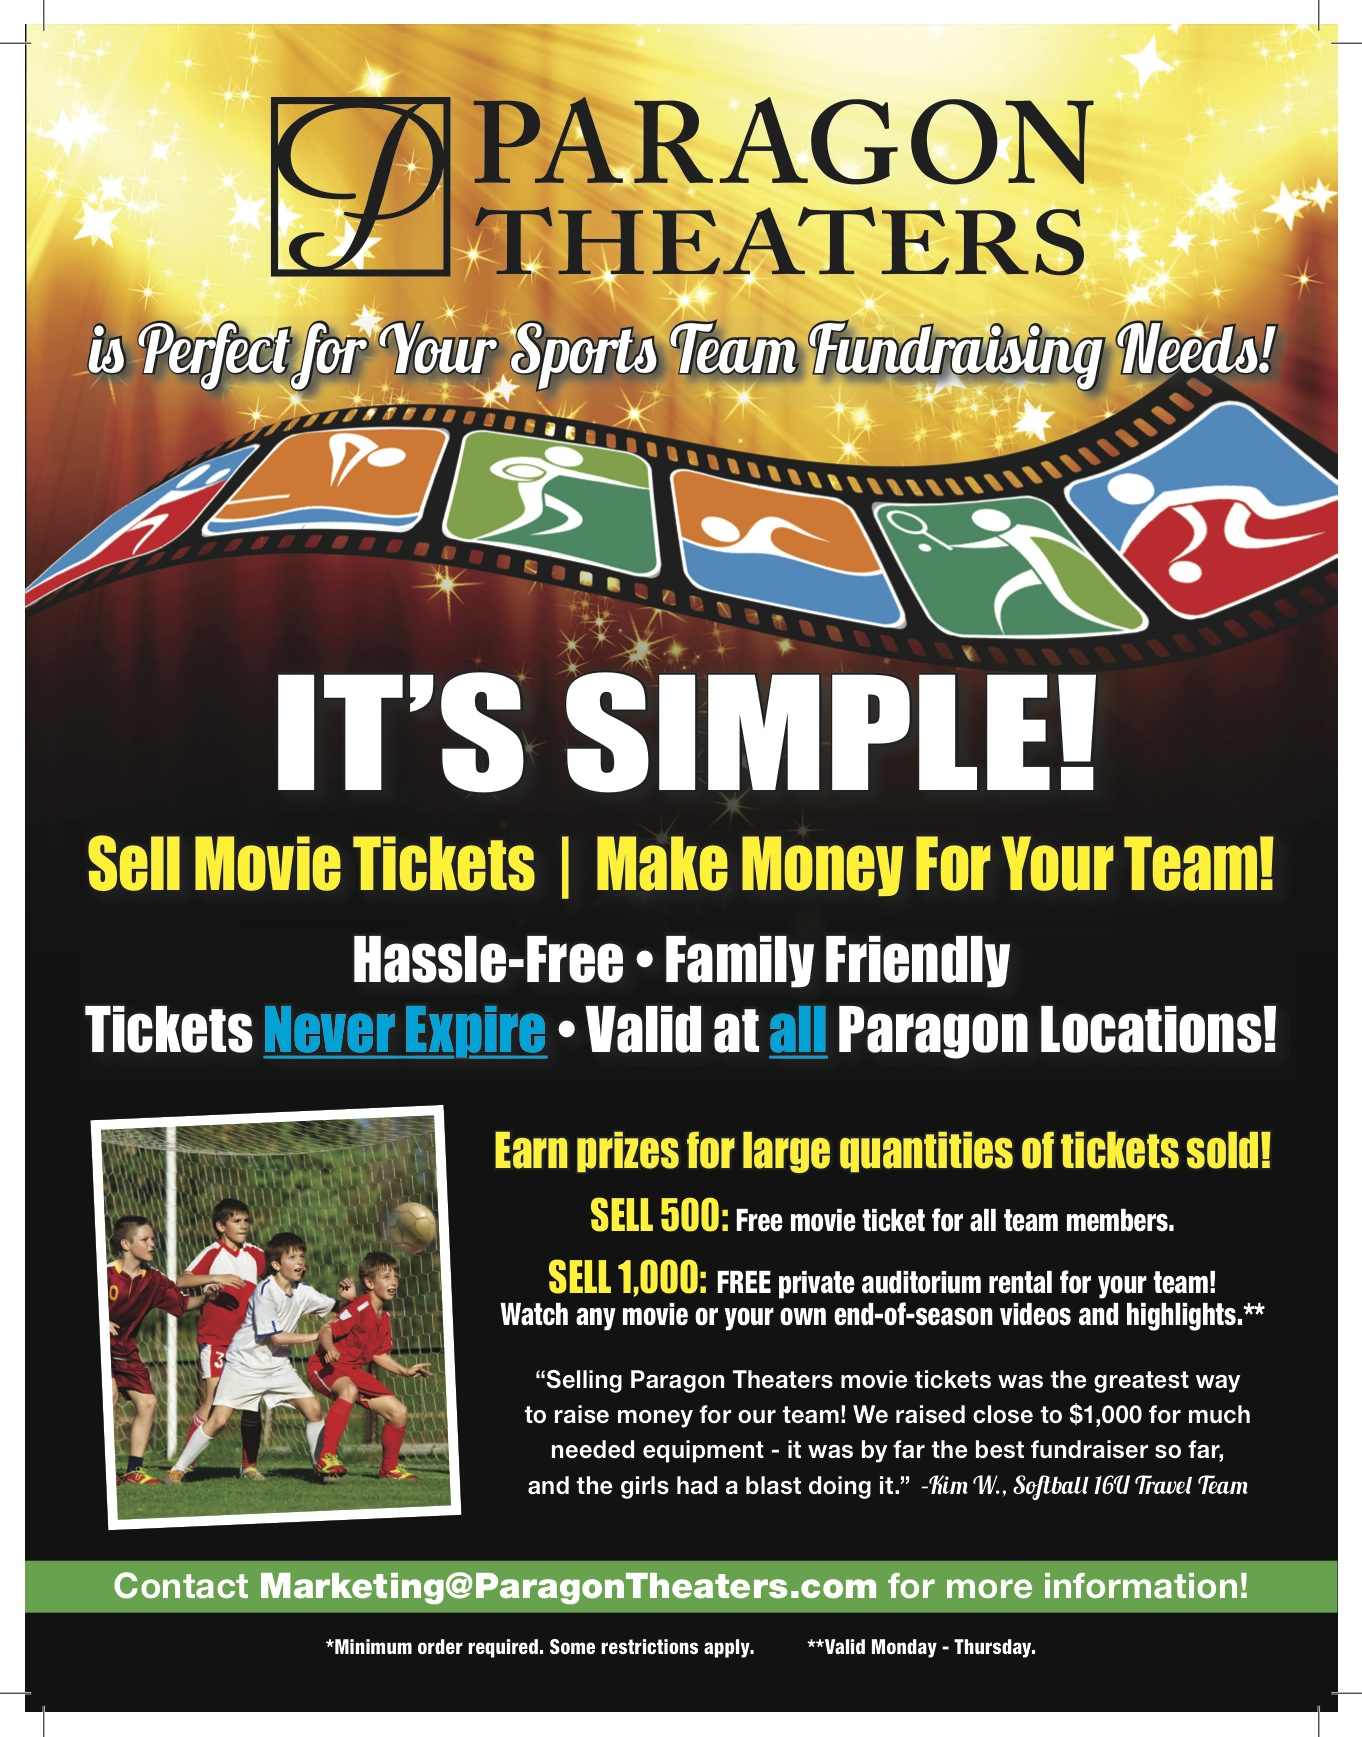 Paragon Theaters Donation Requests